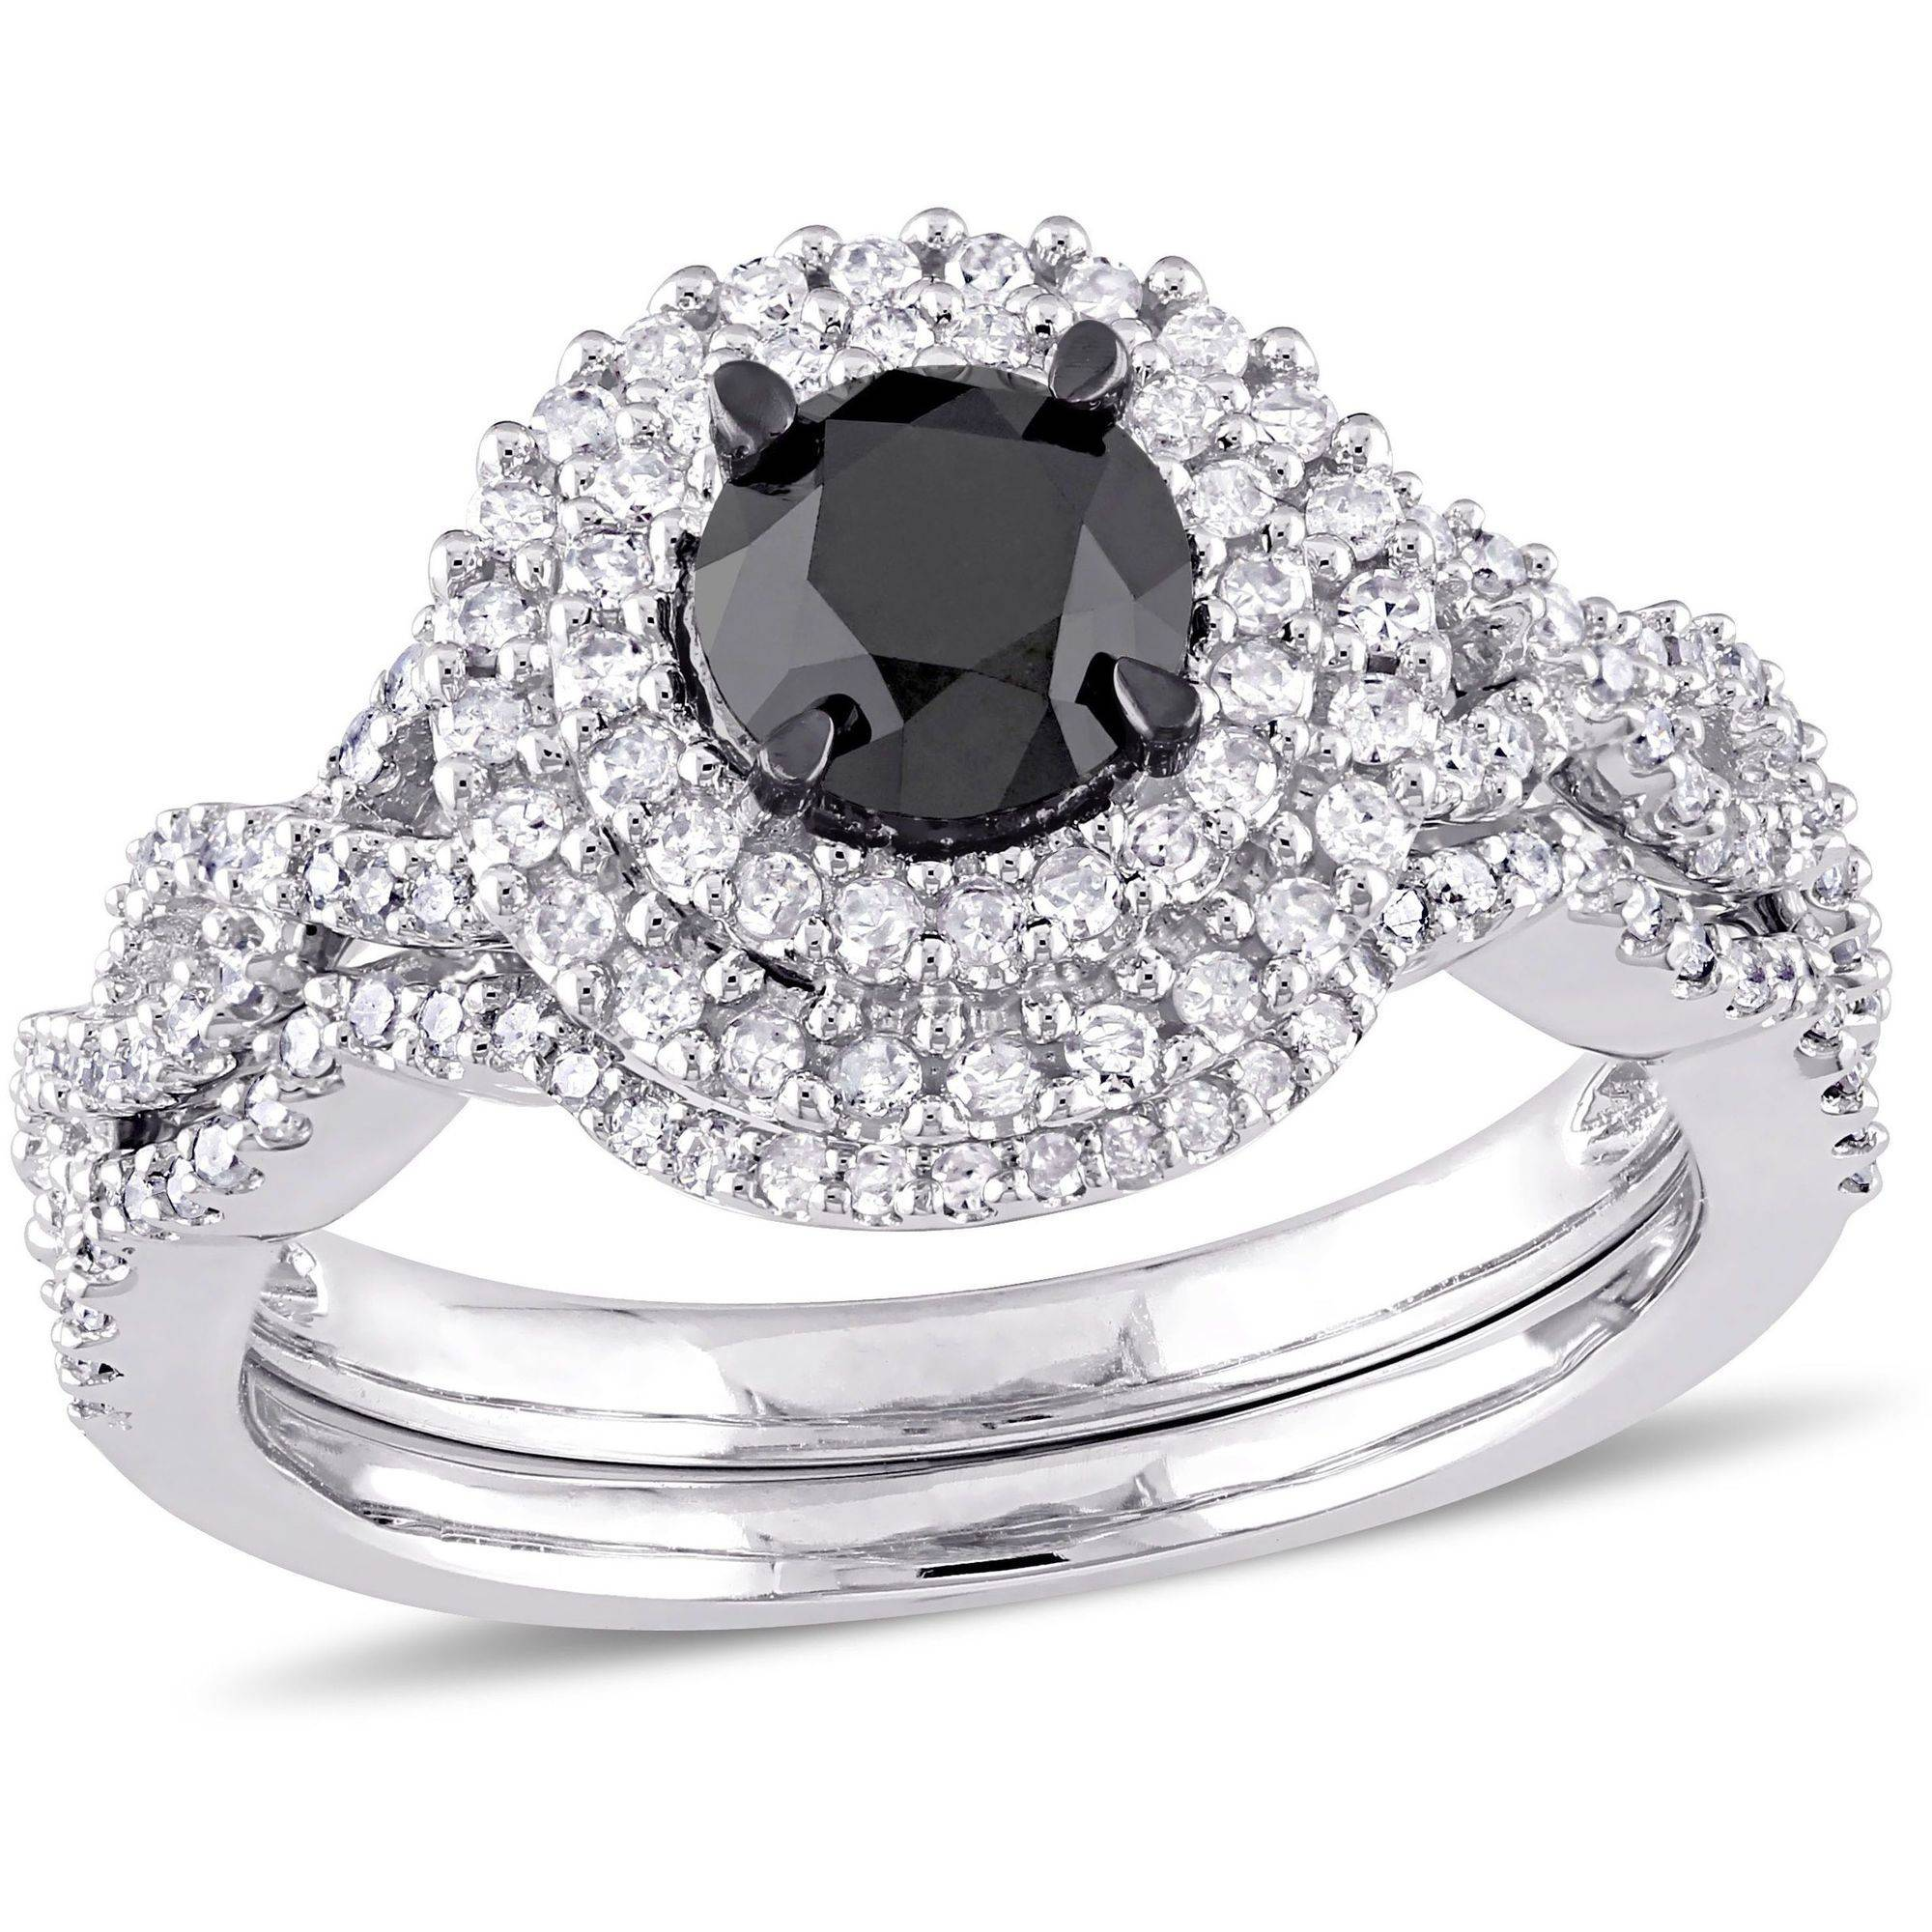 1-1 2 Carat T.W. Black and White Diamond 10kt White Gold Double-Halo Infinity Bridal Set by Generic